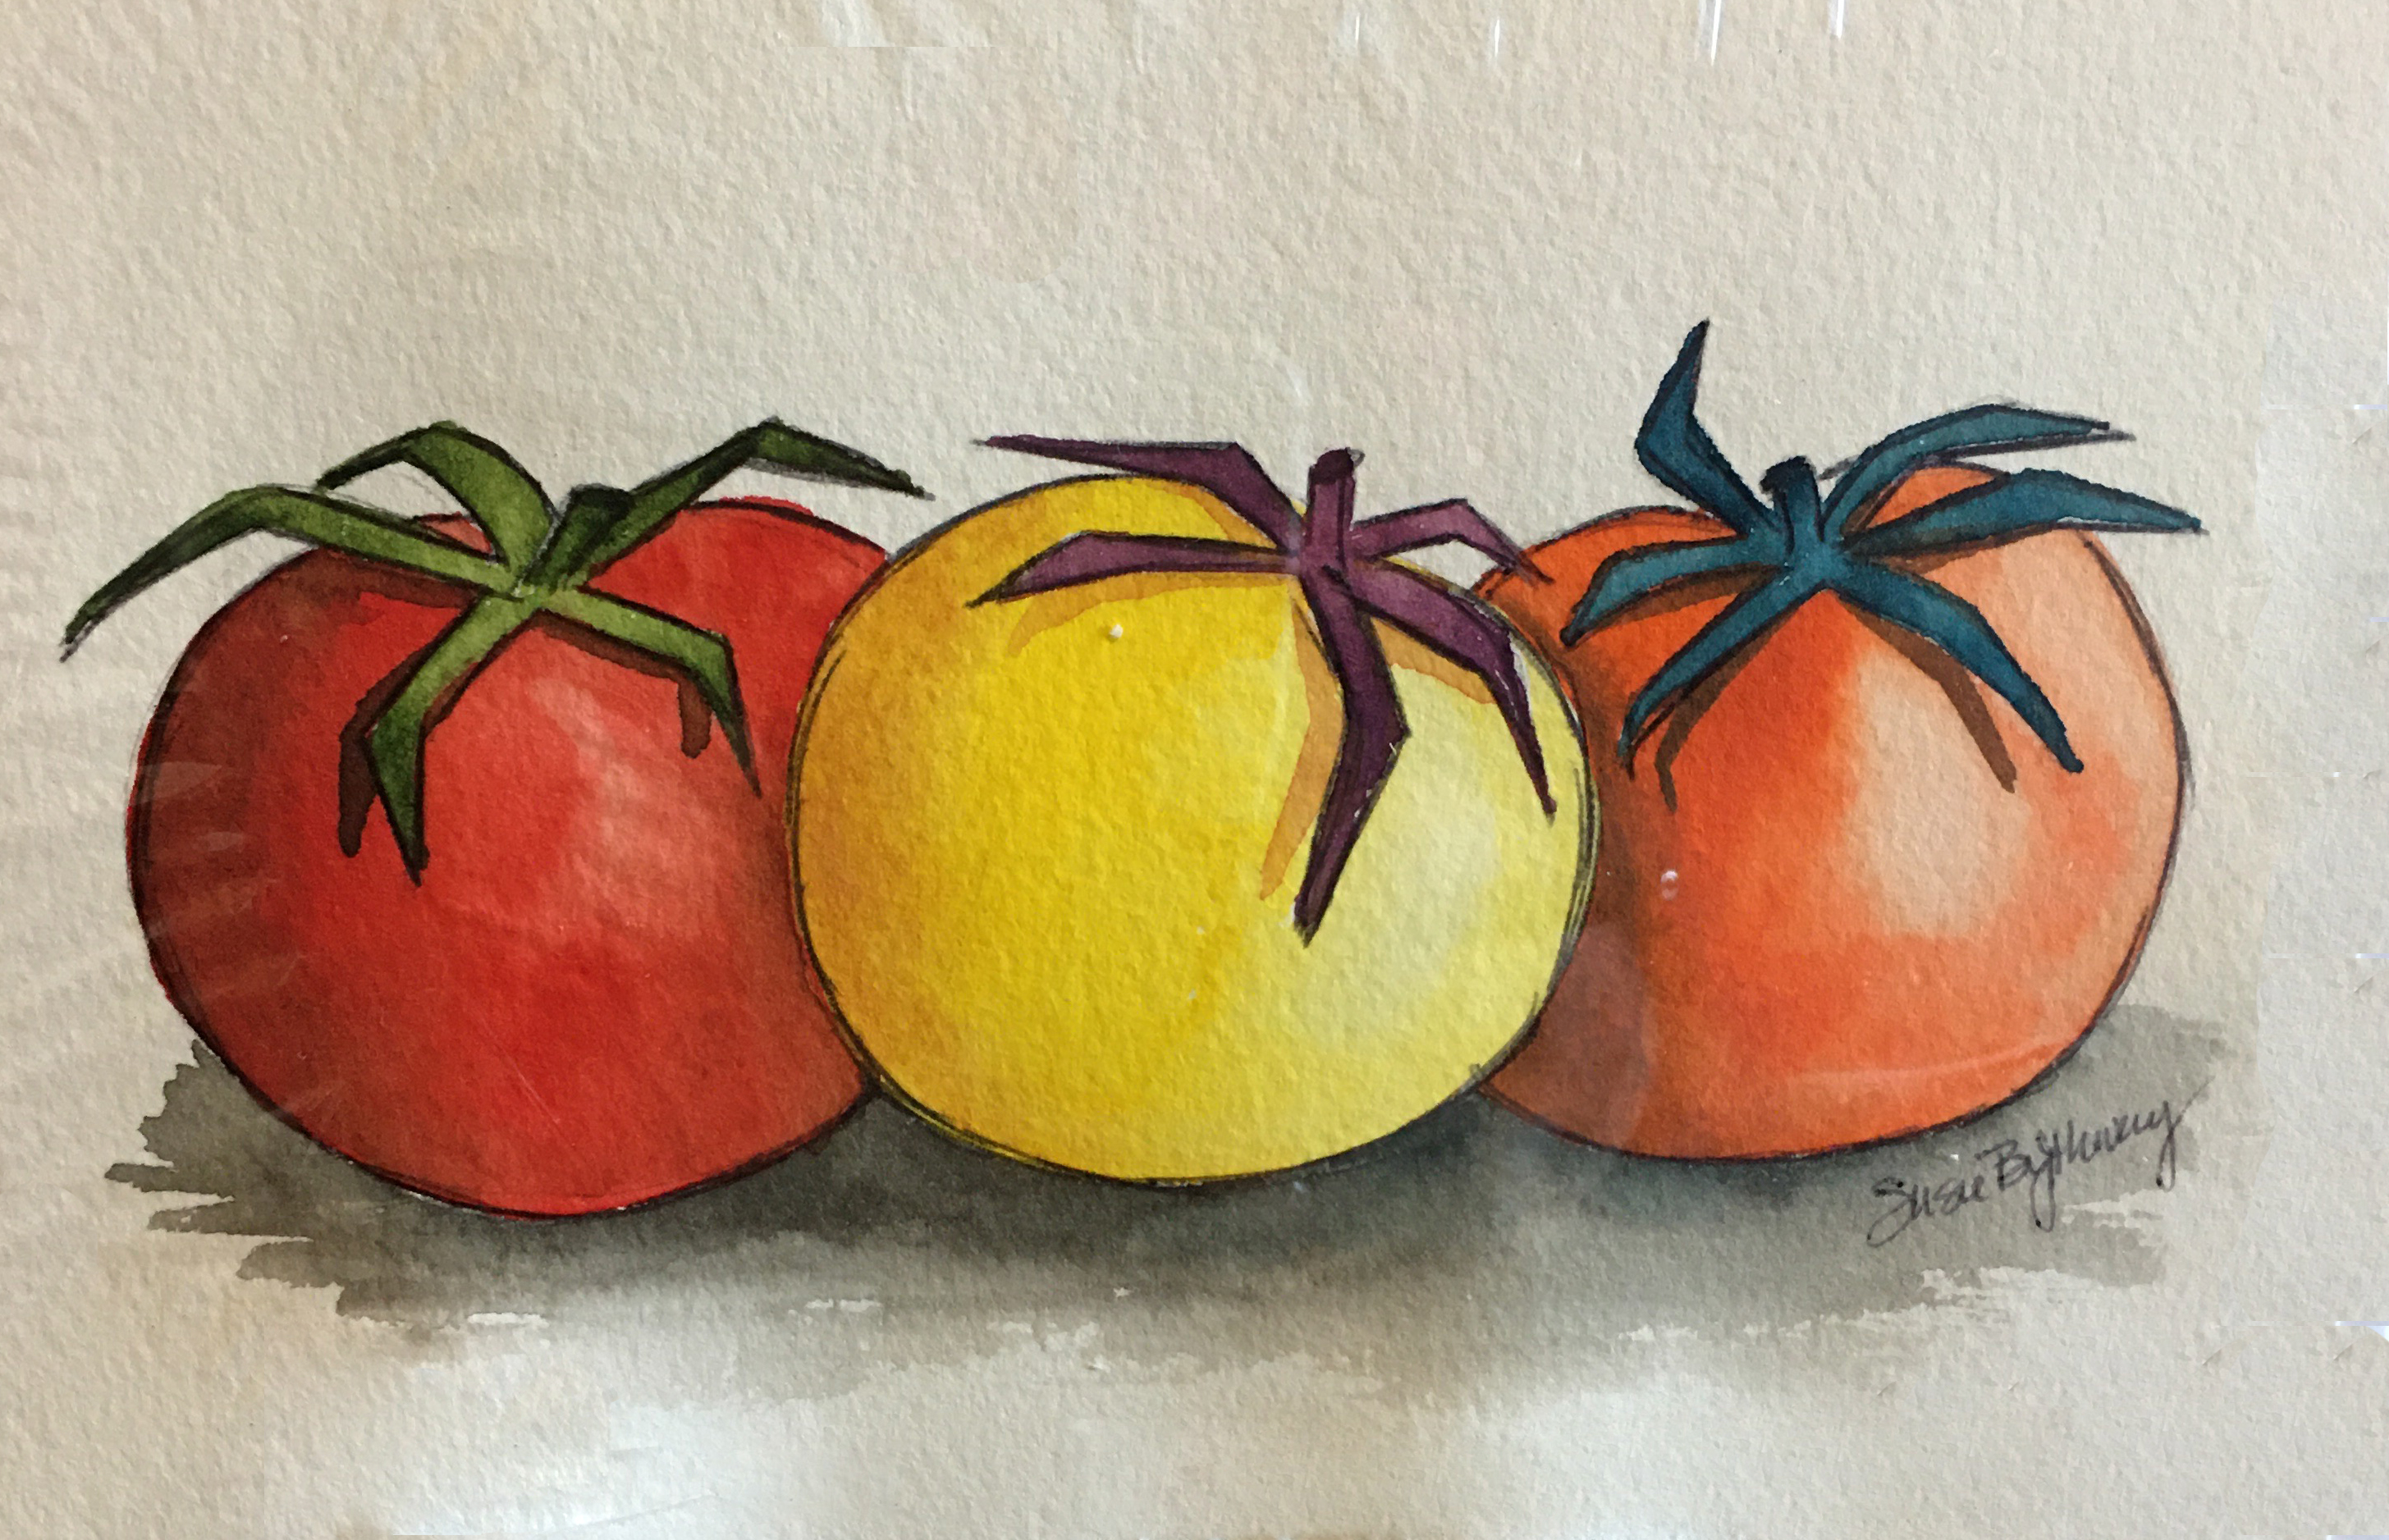 COMPLEMENTARY TOMATOES